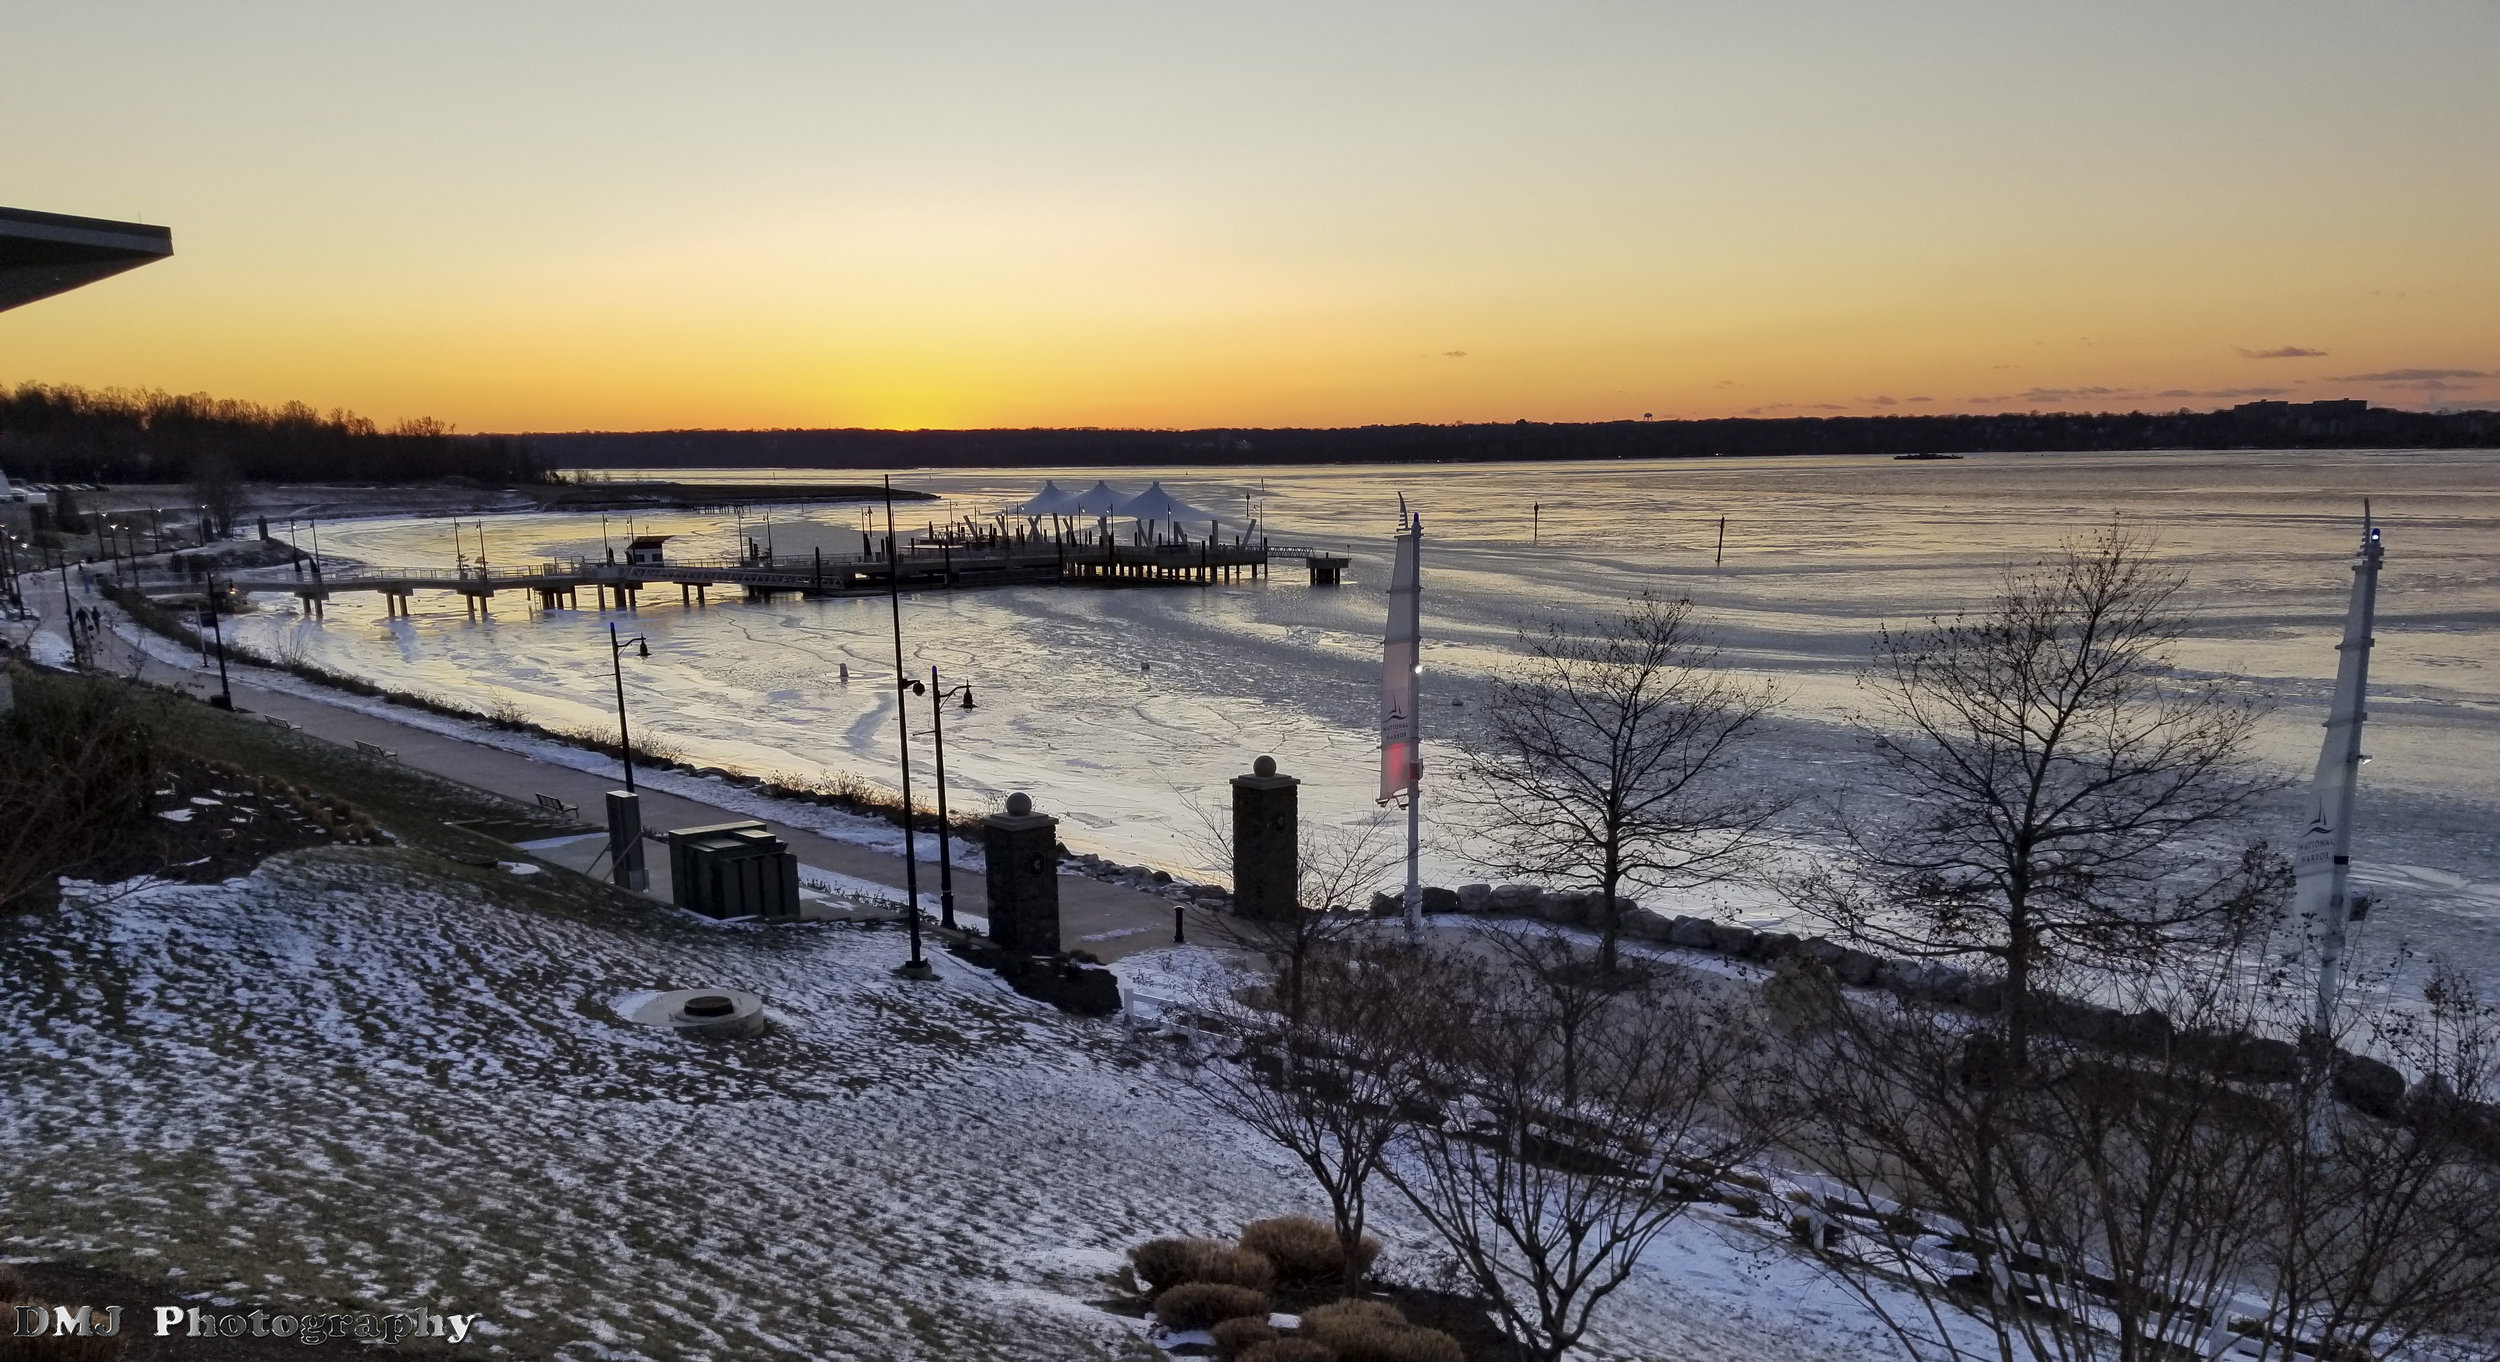 The Potomac River was frozen solid from weeks of sub-freezing temperatures